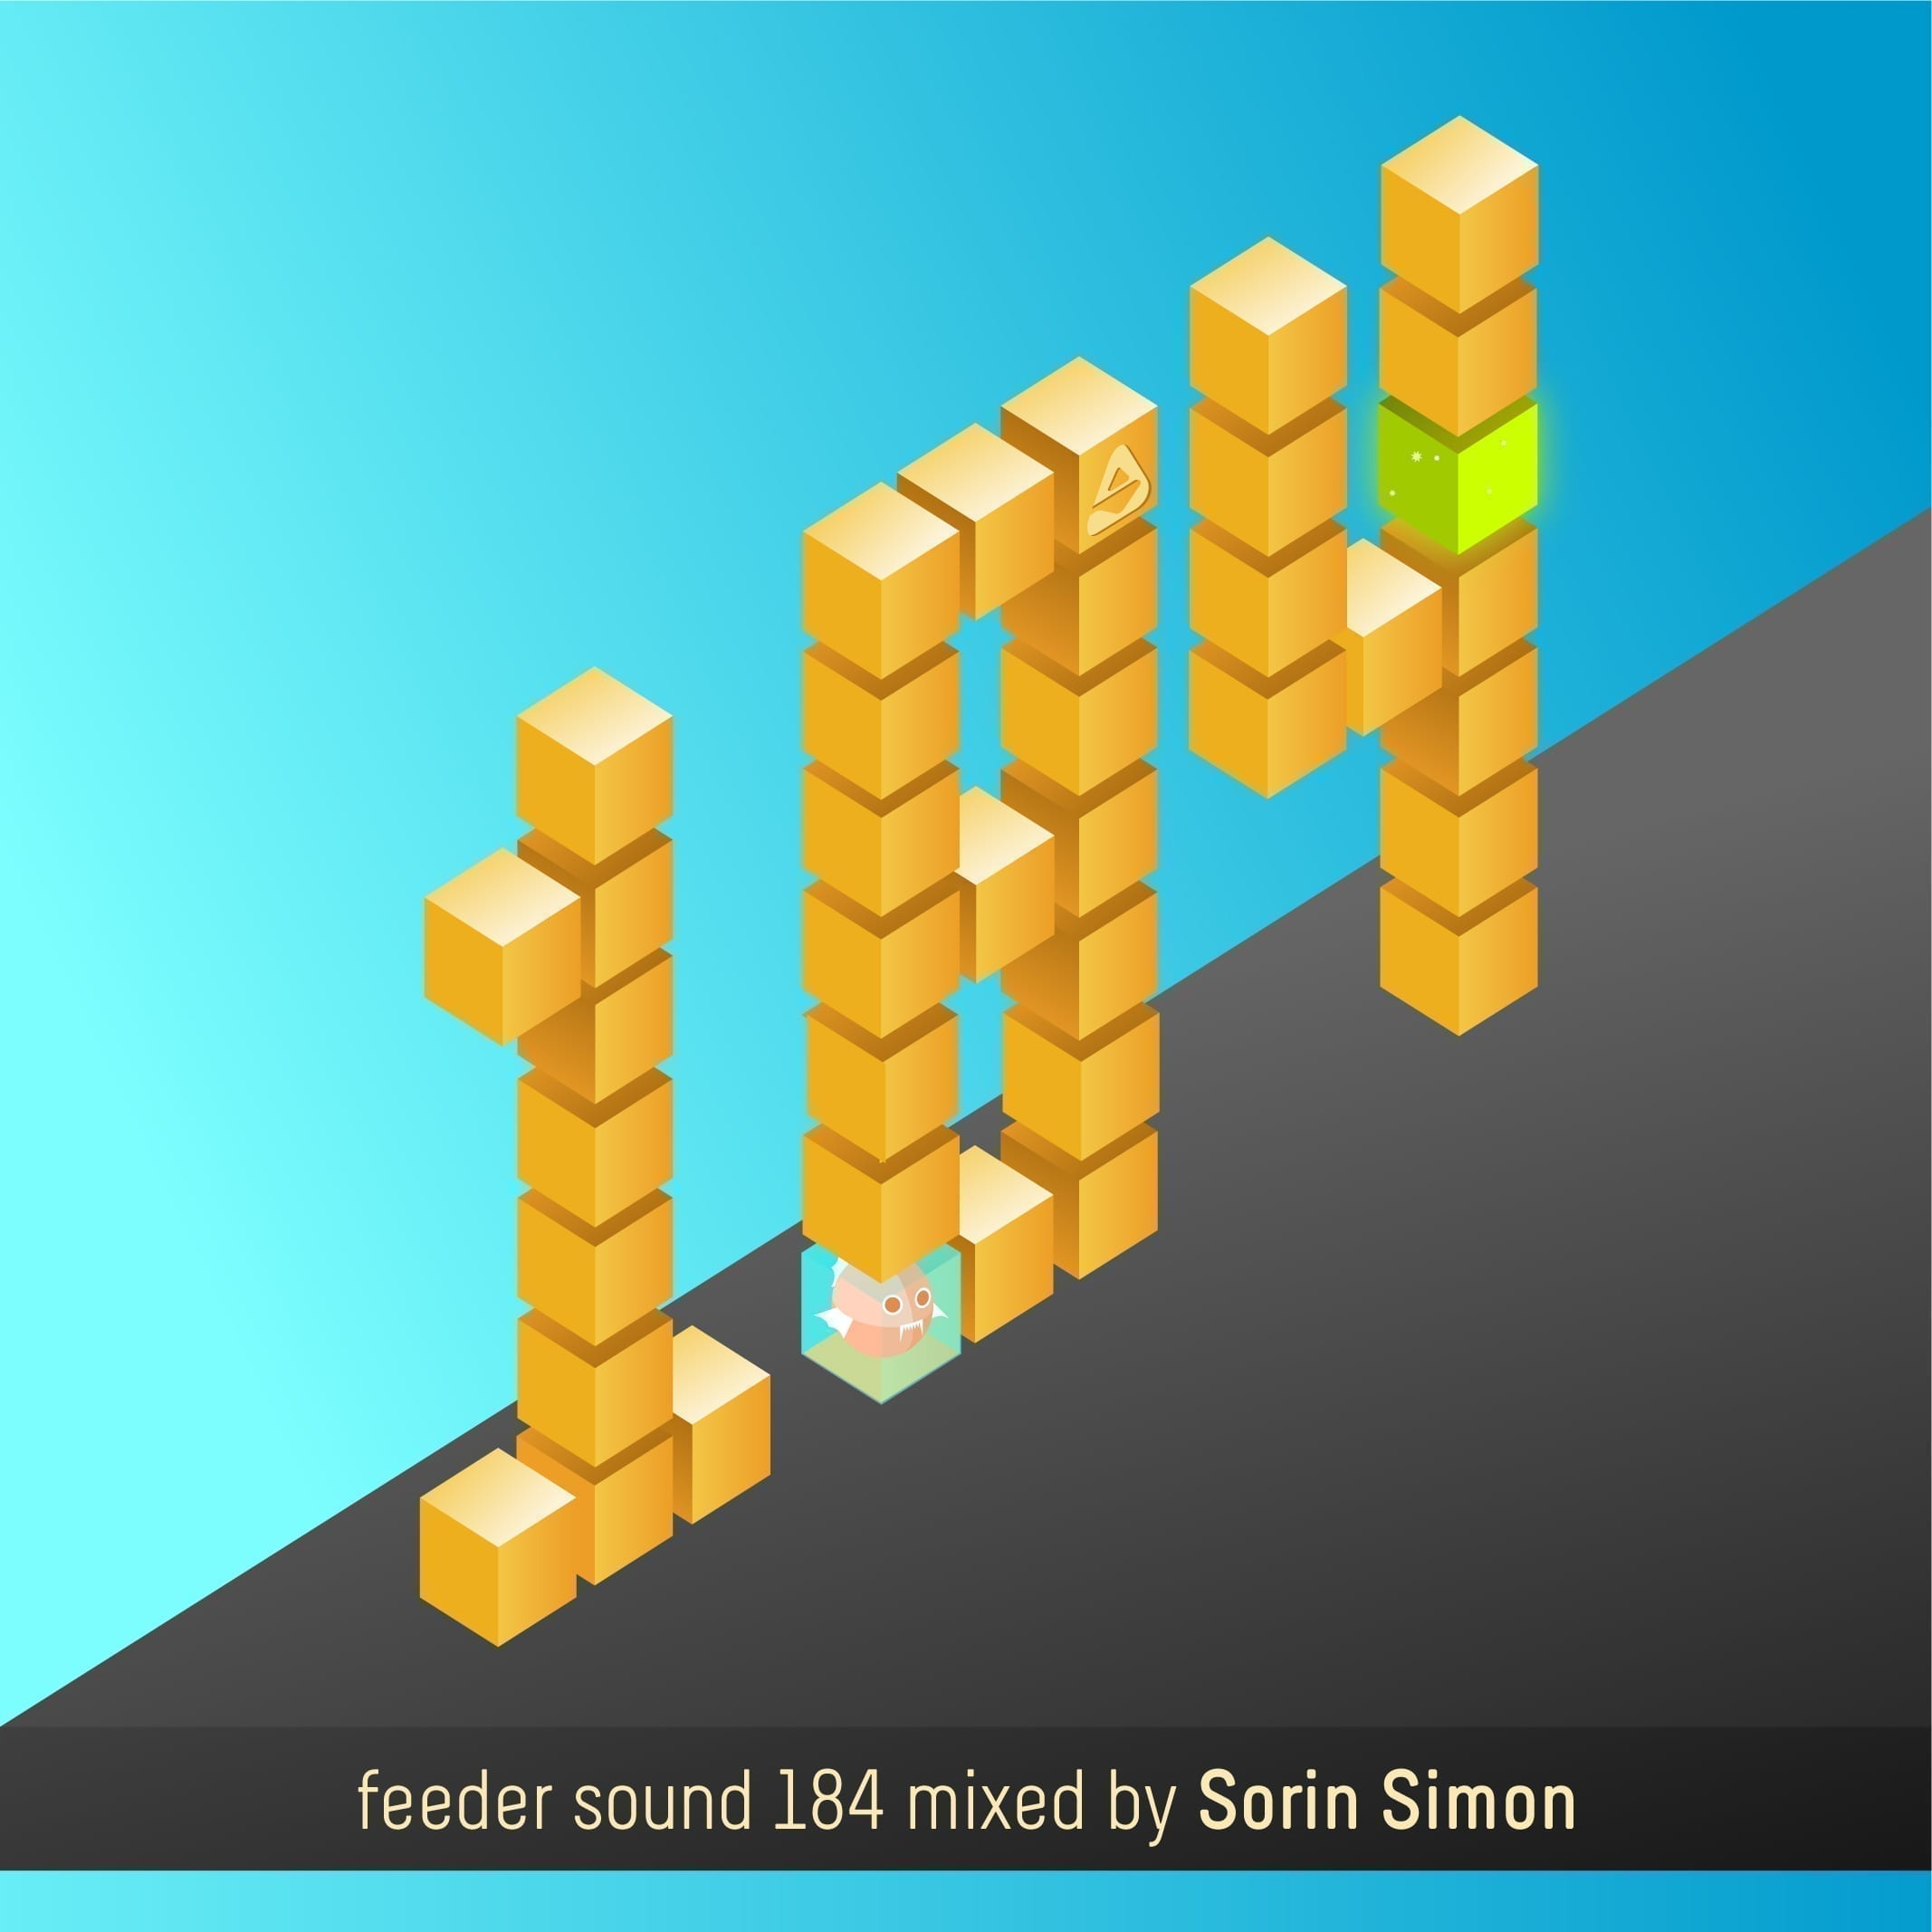 feeder sound 184 mixed by Sorin Simon